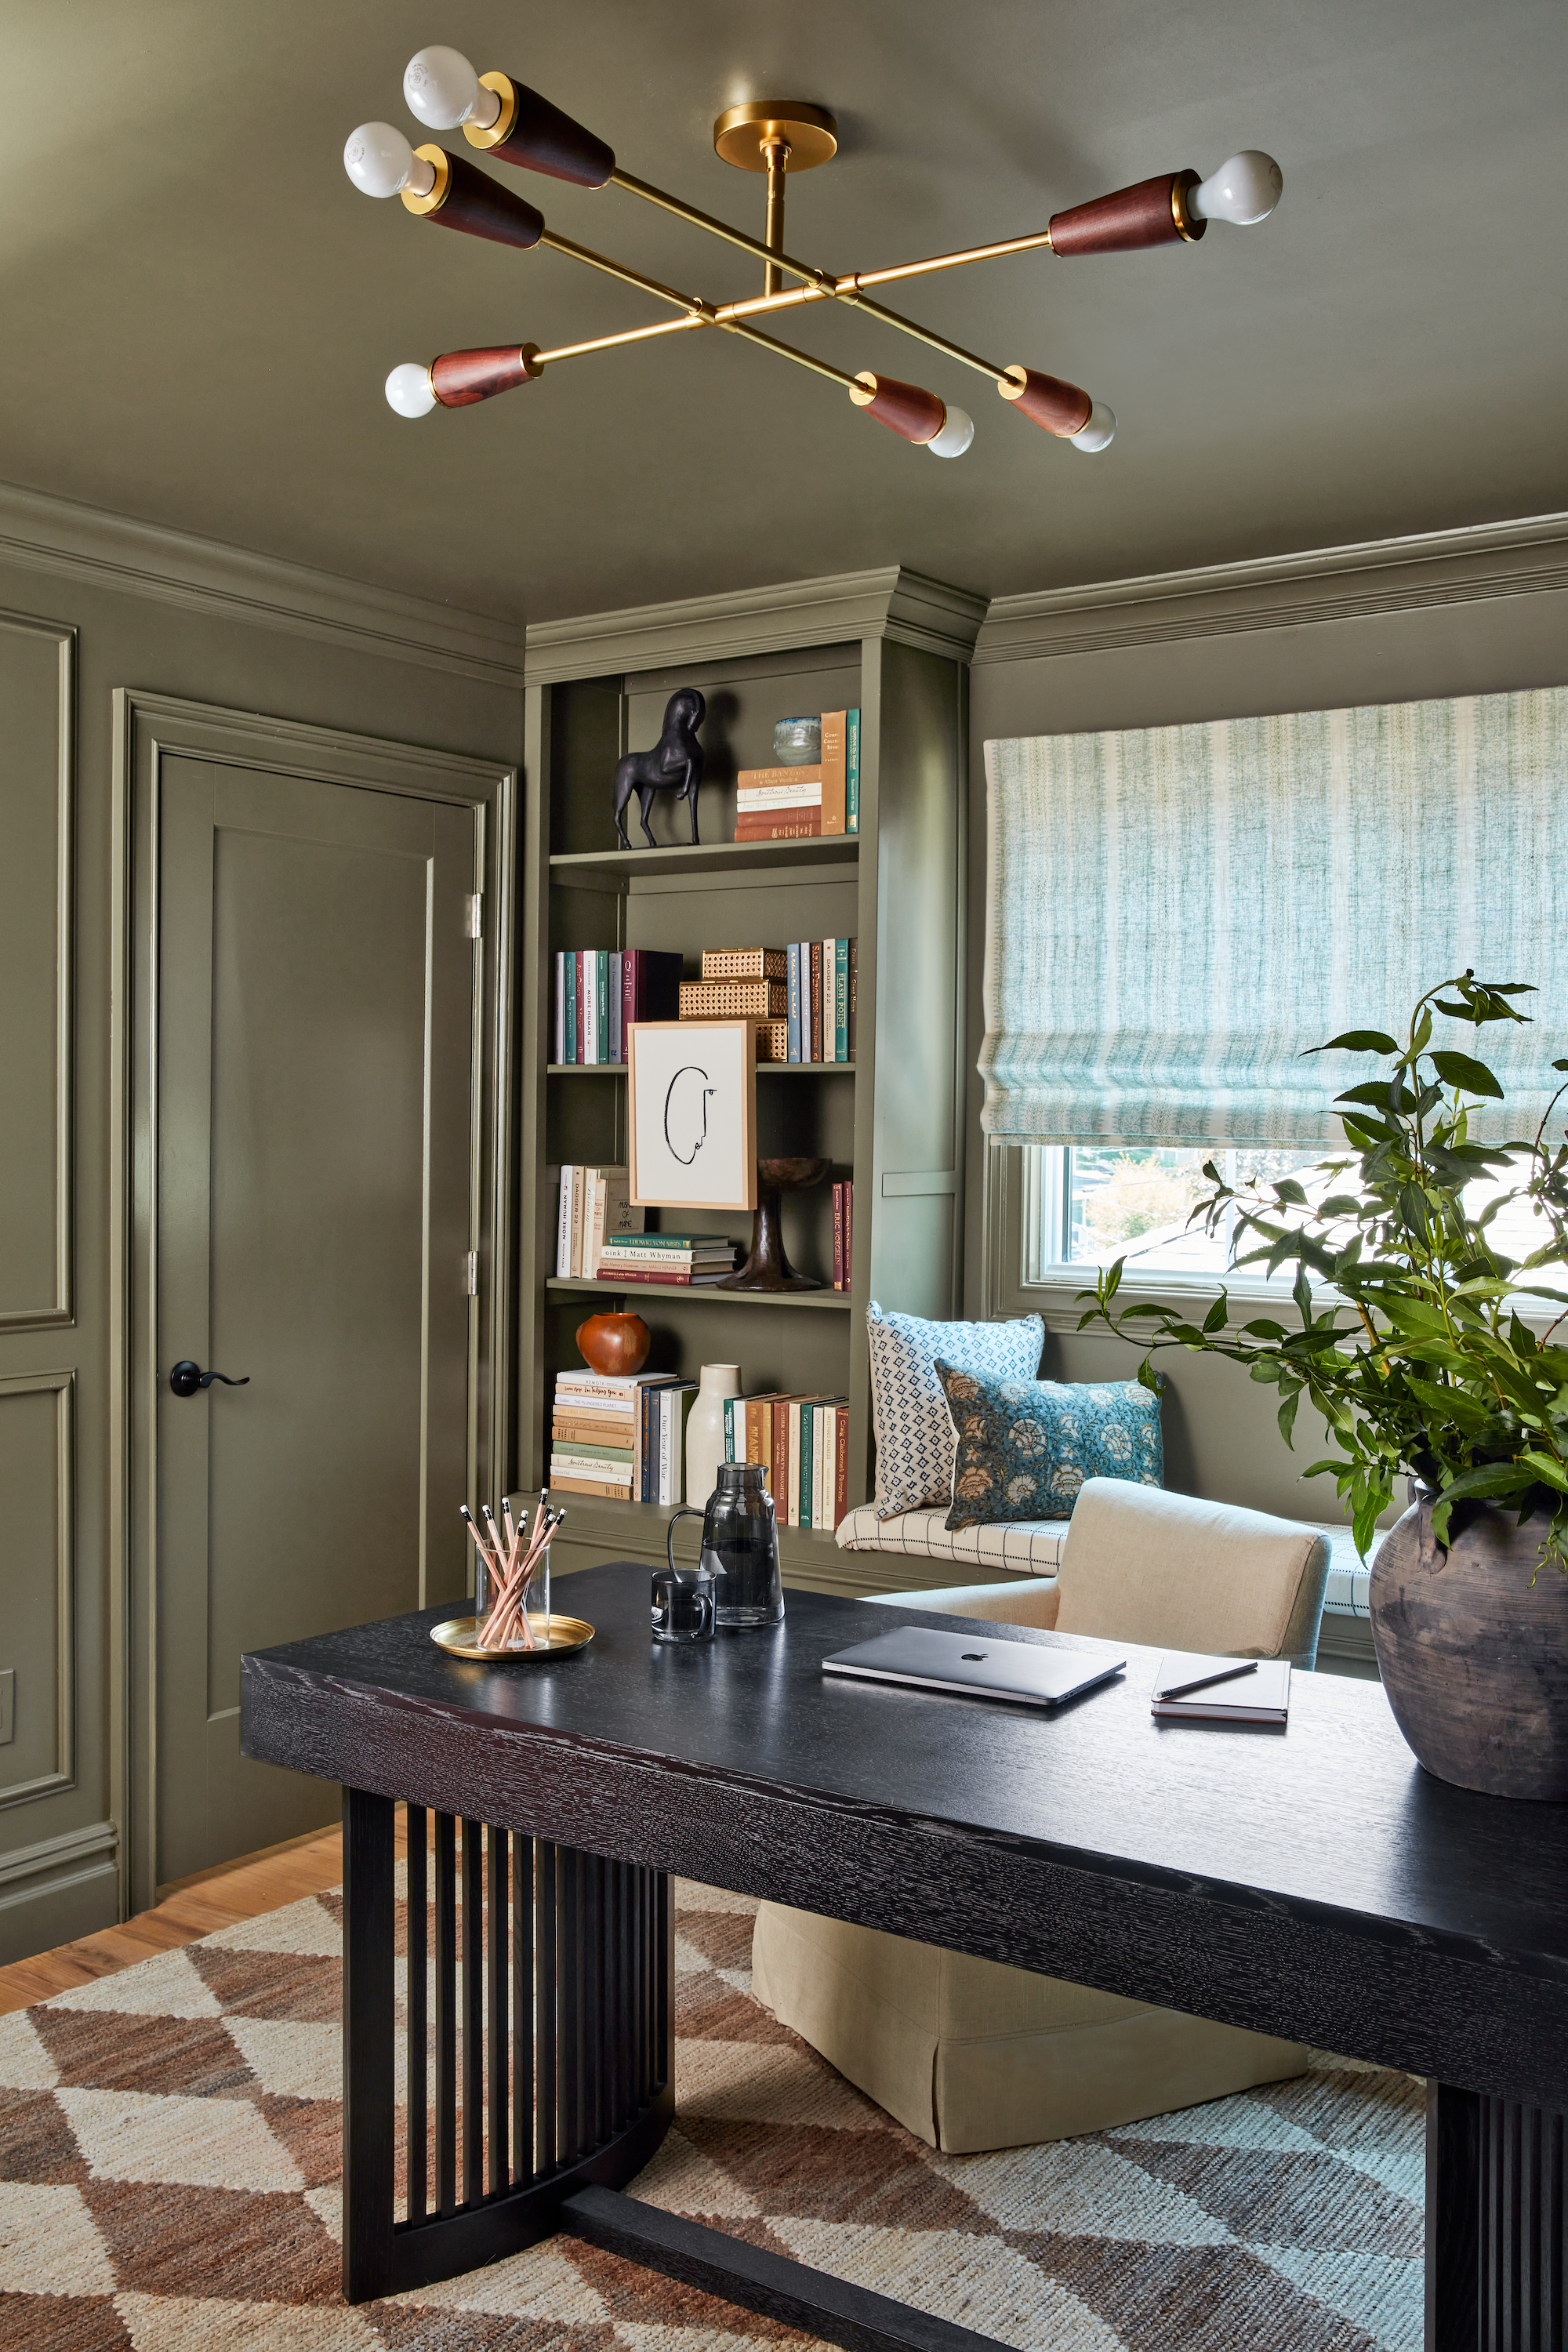 Real Simple Home 2021, Attic olive paint